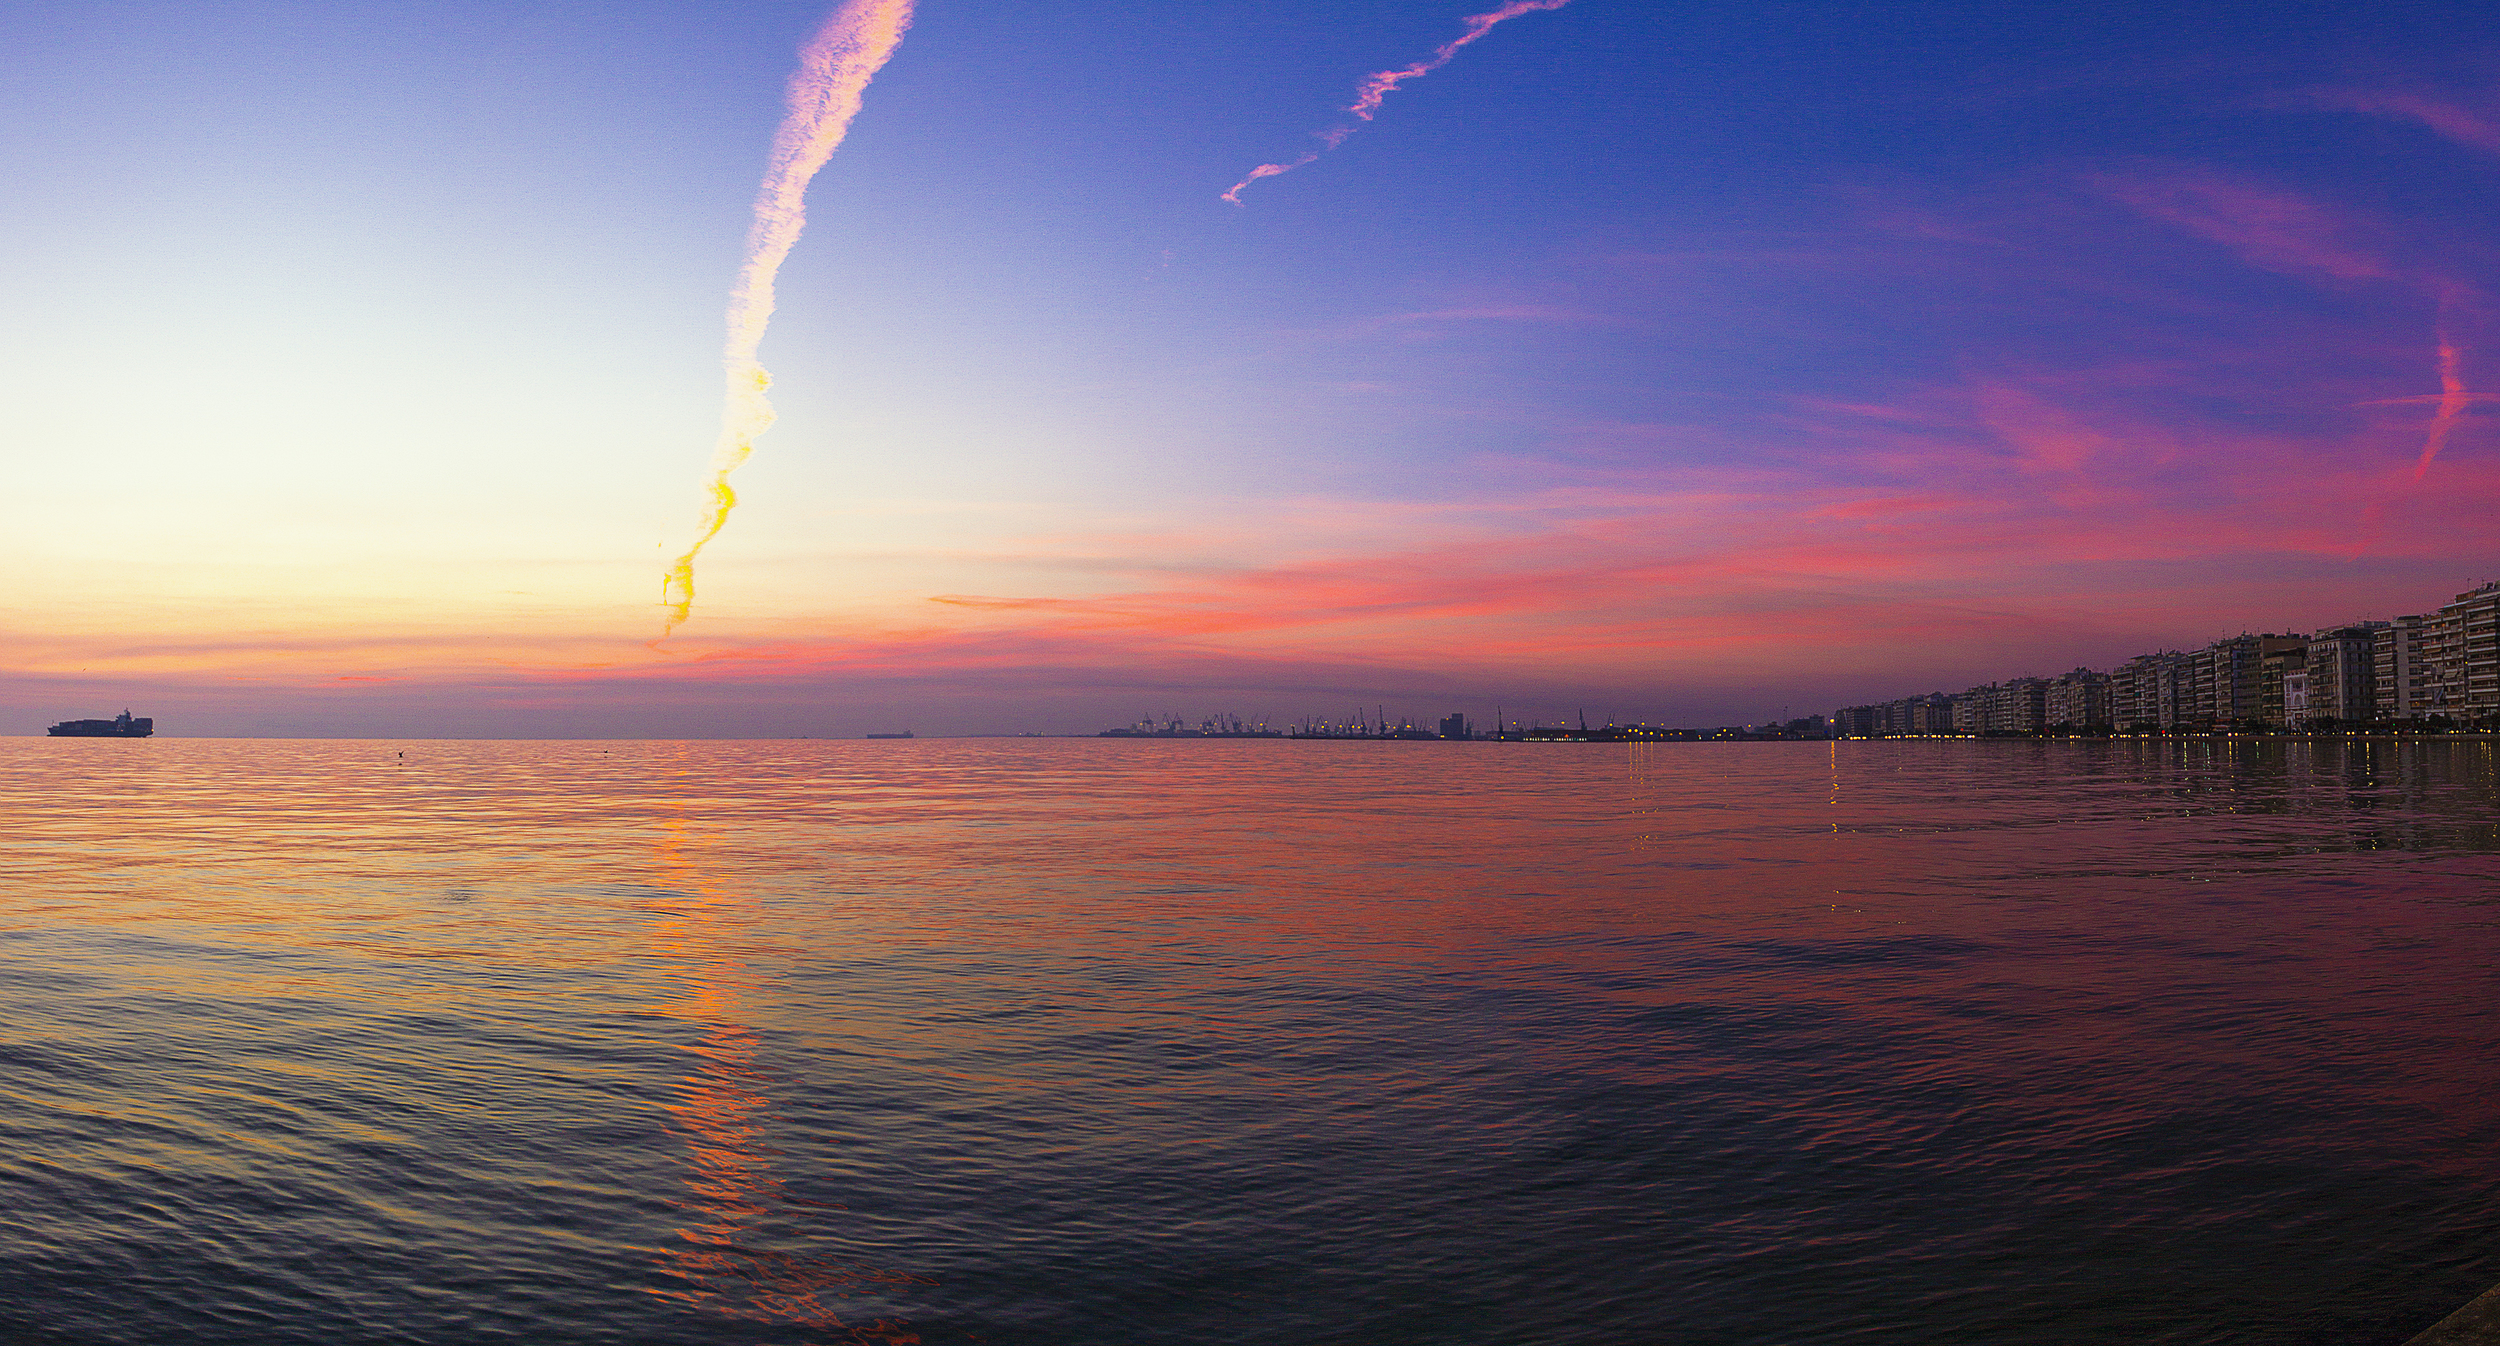 landscape___35____thessaloniki_sea_side_sunset_by_the_french_monkey-d9h3j8s.jpg